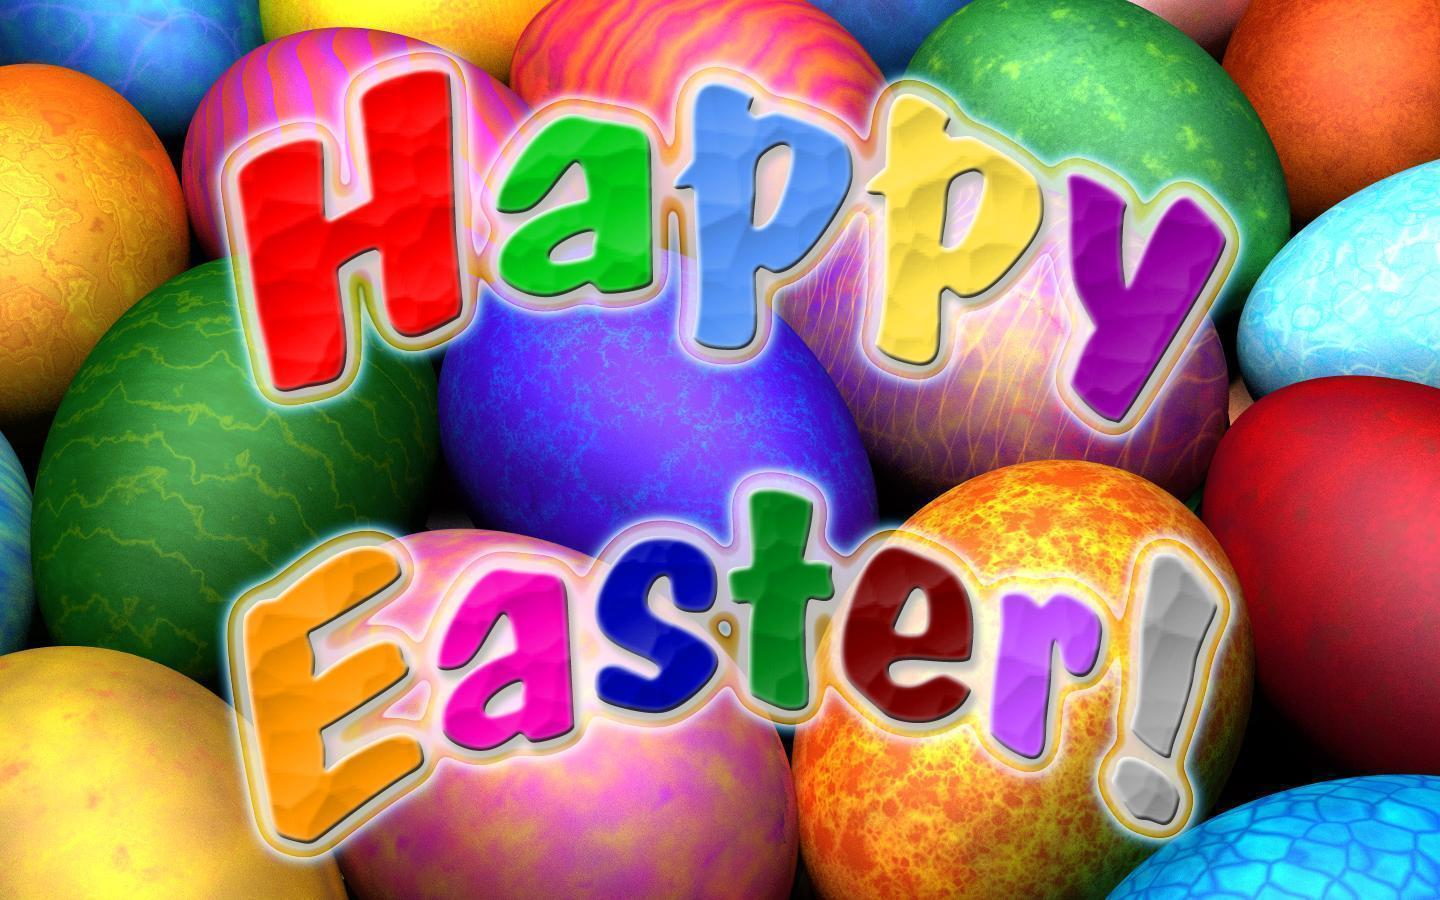 Free Easter Wallpaper Backgrounds - Wallpaper Cave